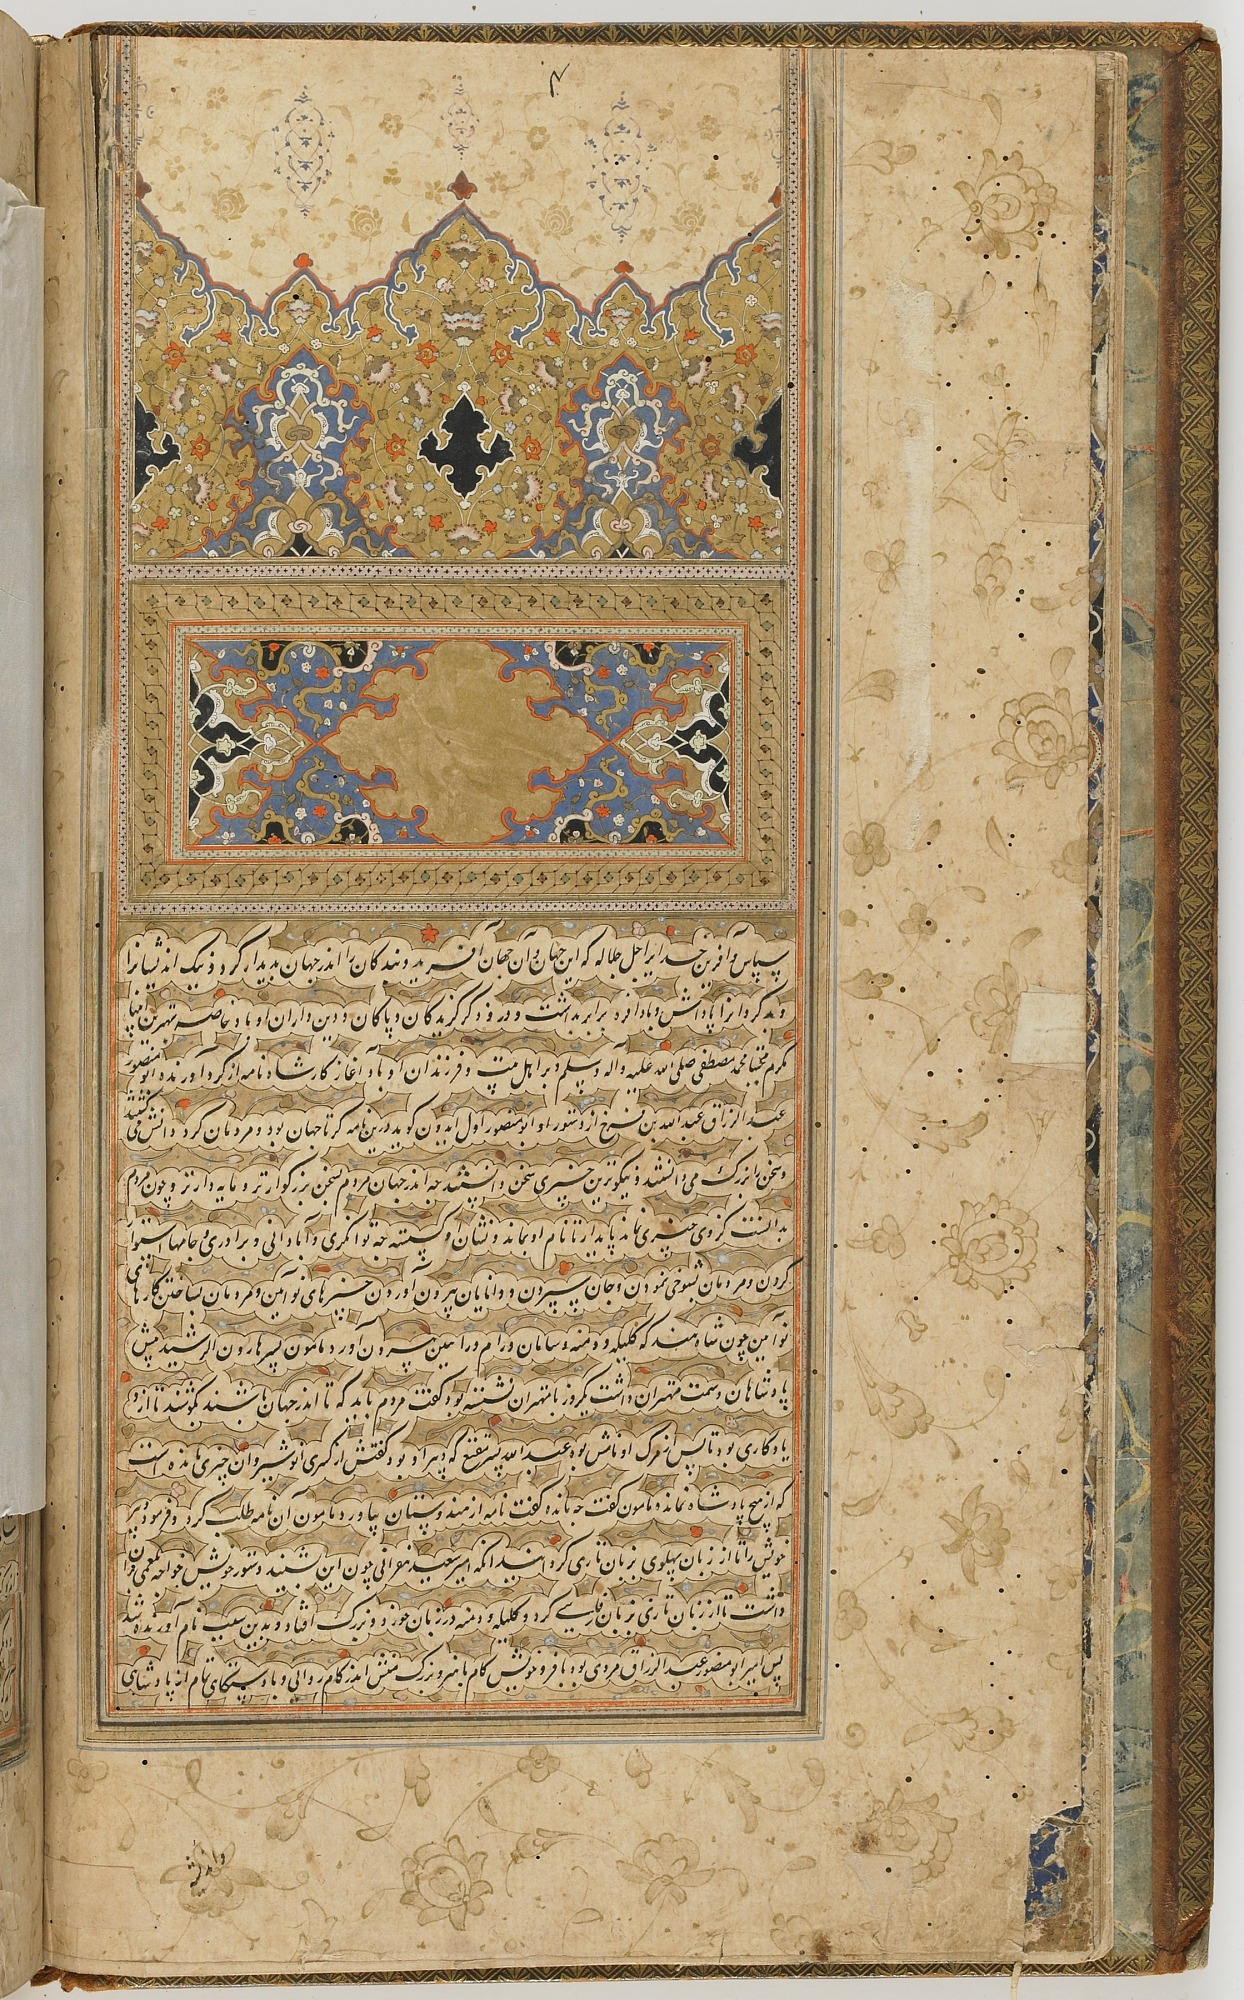 folio 3 verso: The Shahnama (Book of kings) by Firdausi (d. 1020)